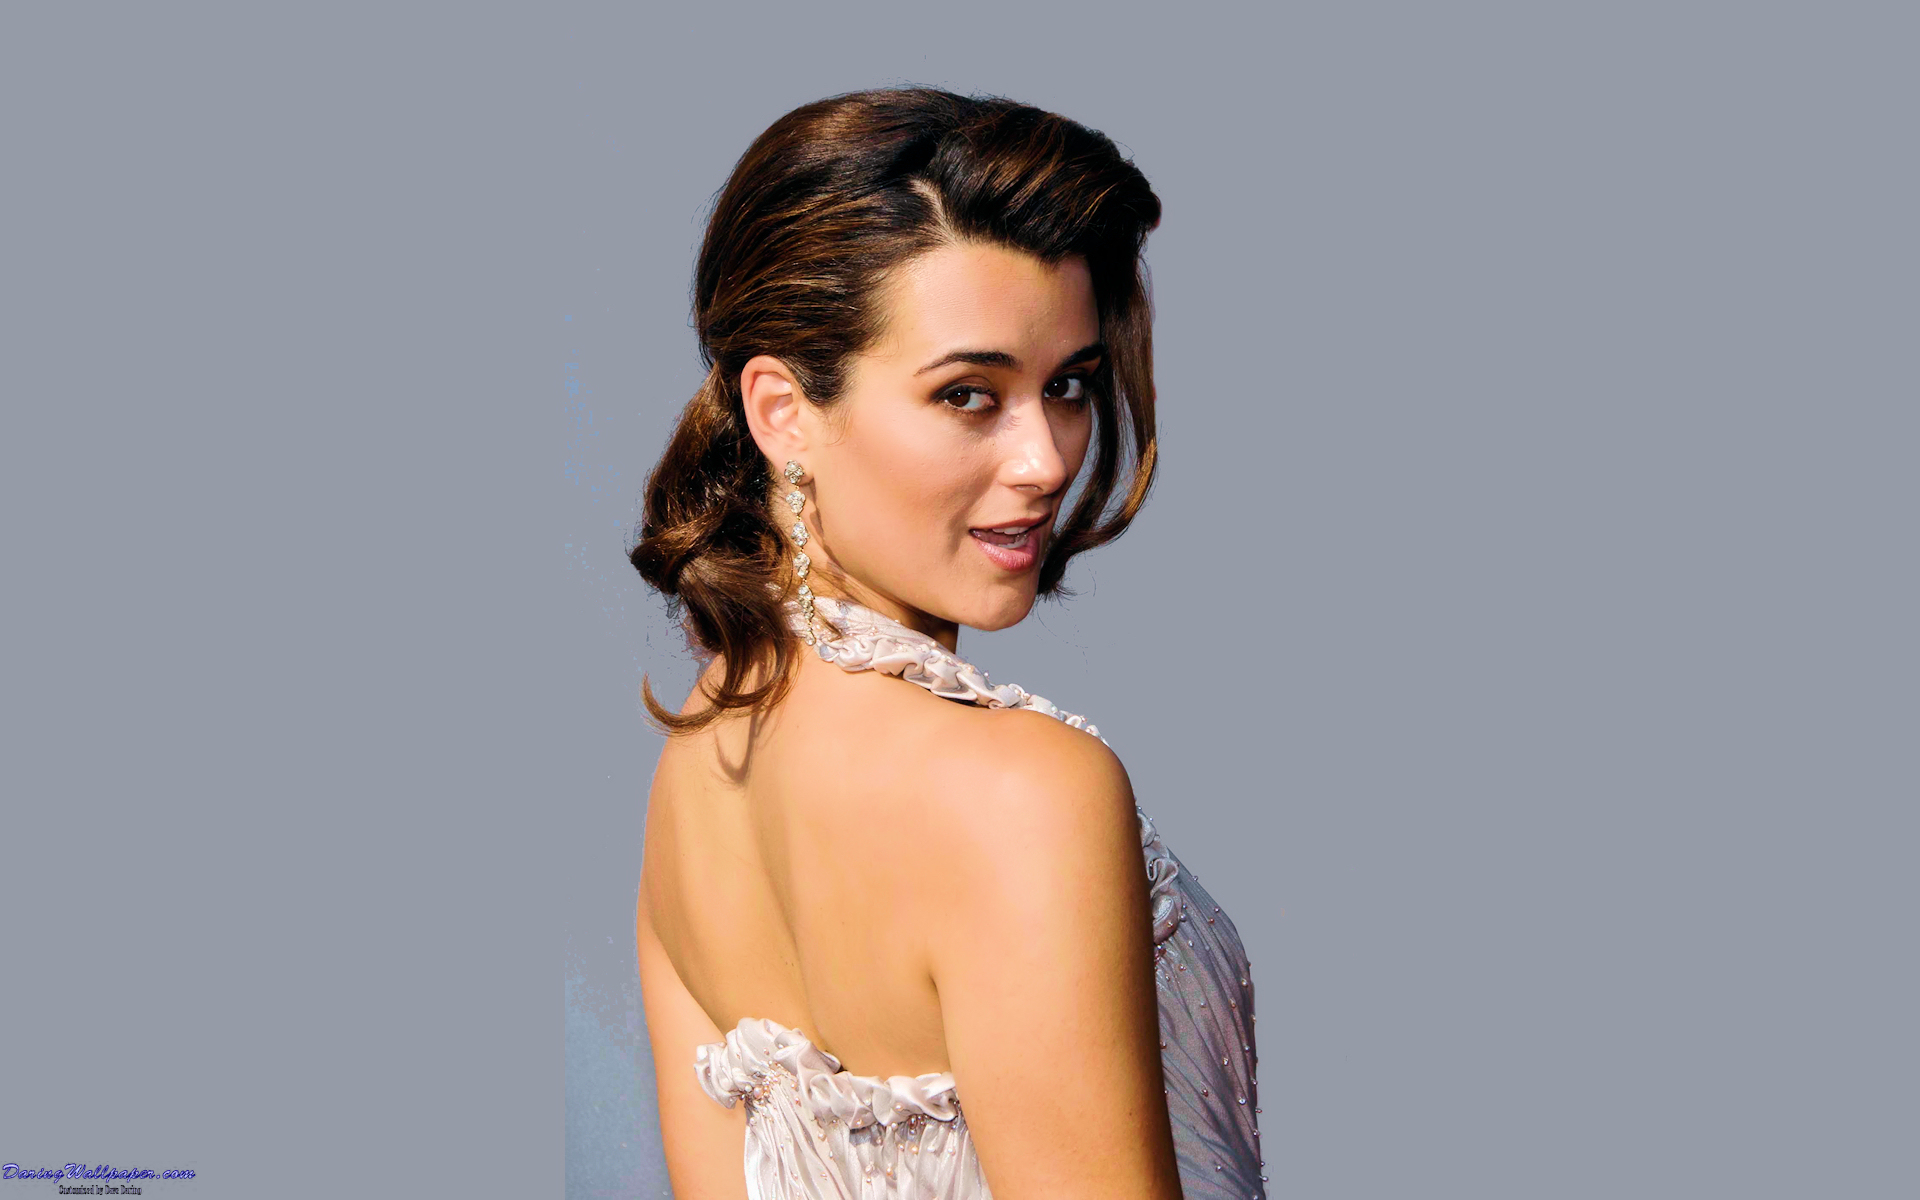 NCIS Cote De Pablo (Ziva David) Wallpaper